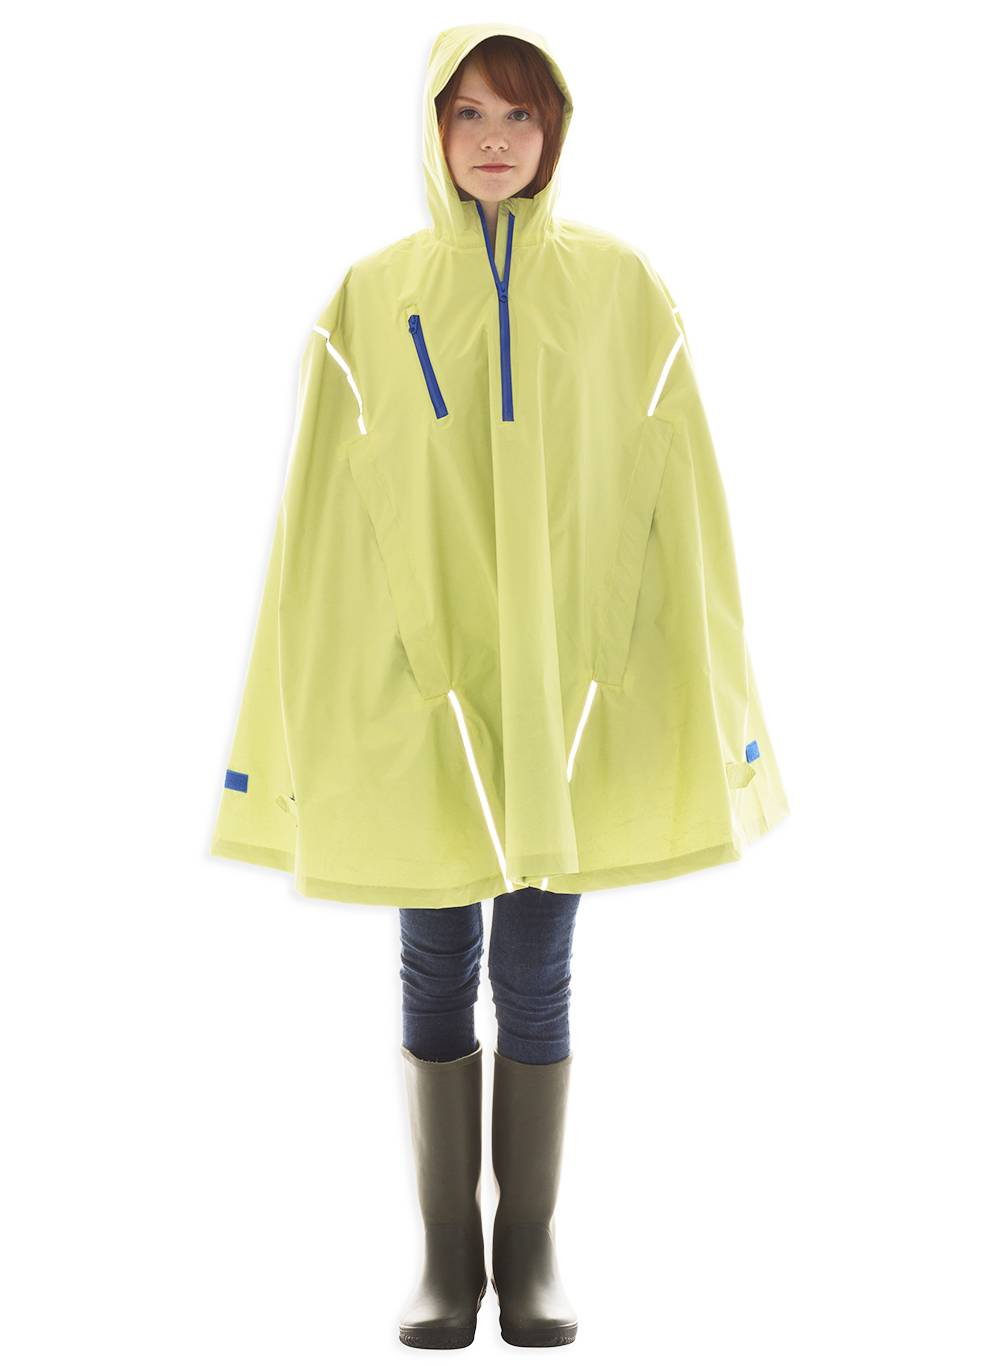 Seabee Yellow, High-Performance Rain Cape by Cleverhood